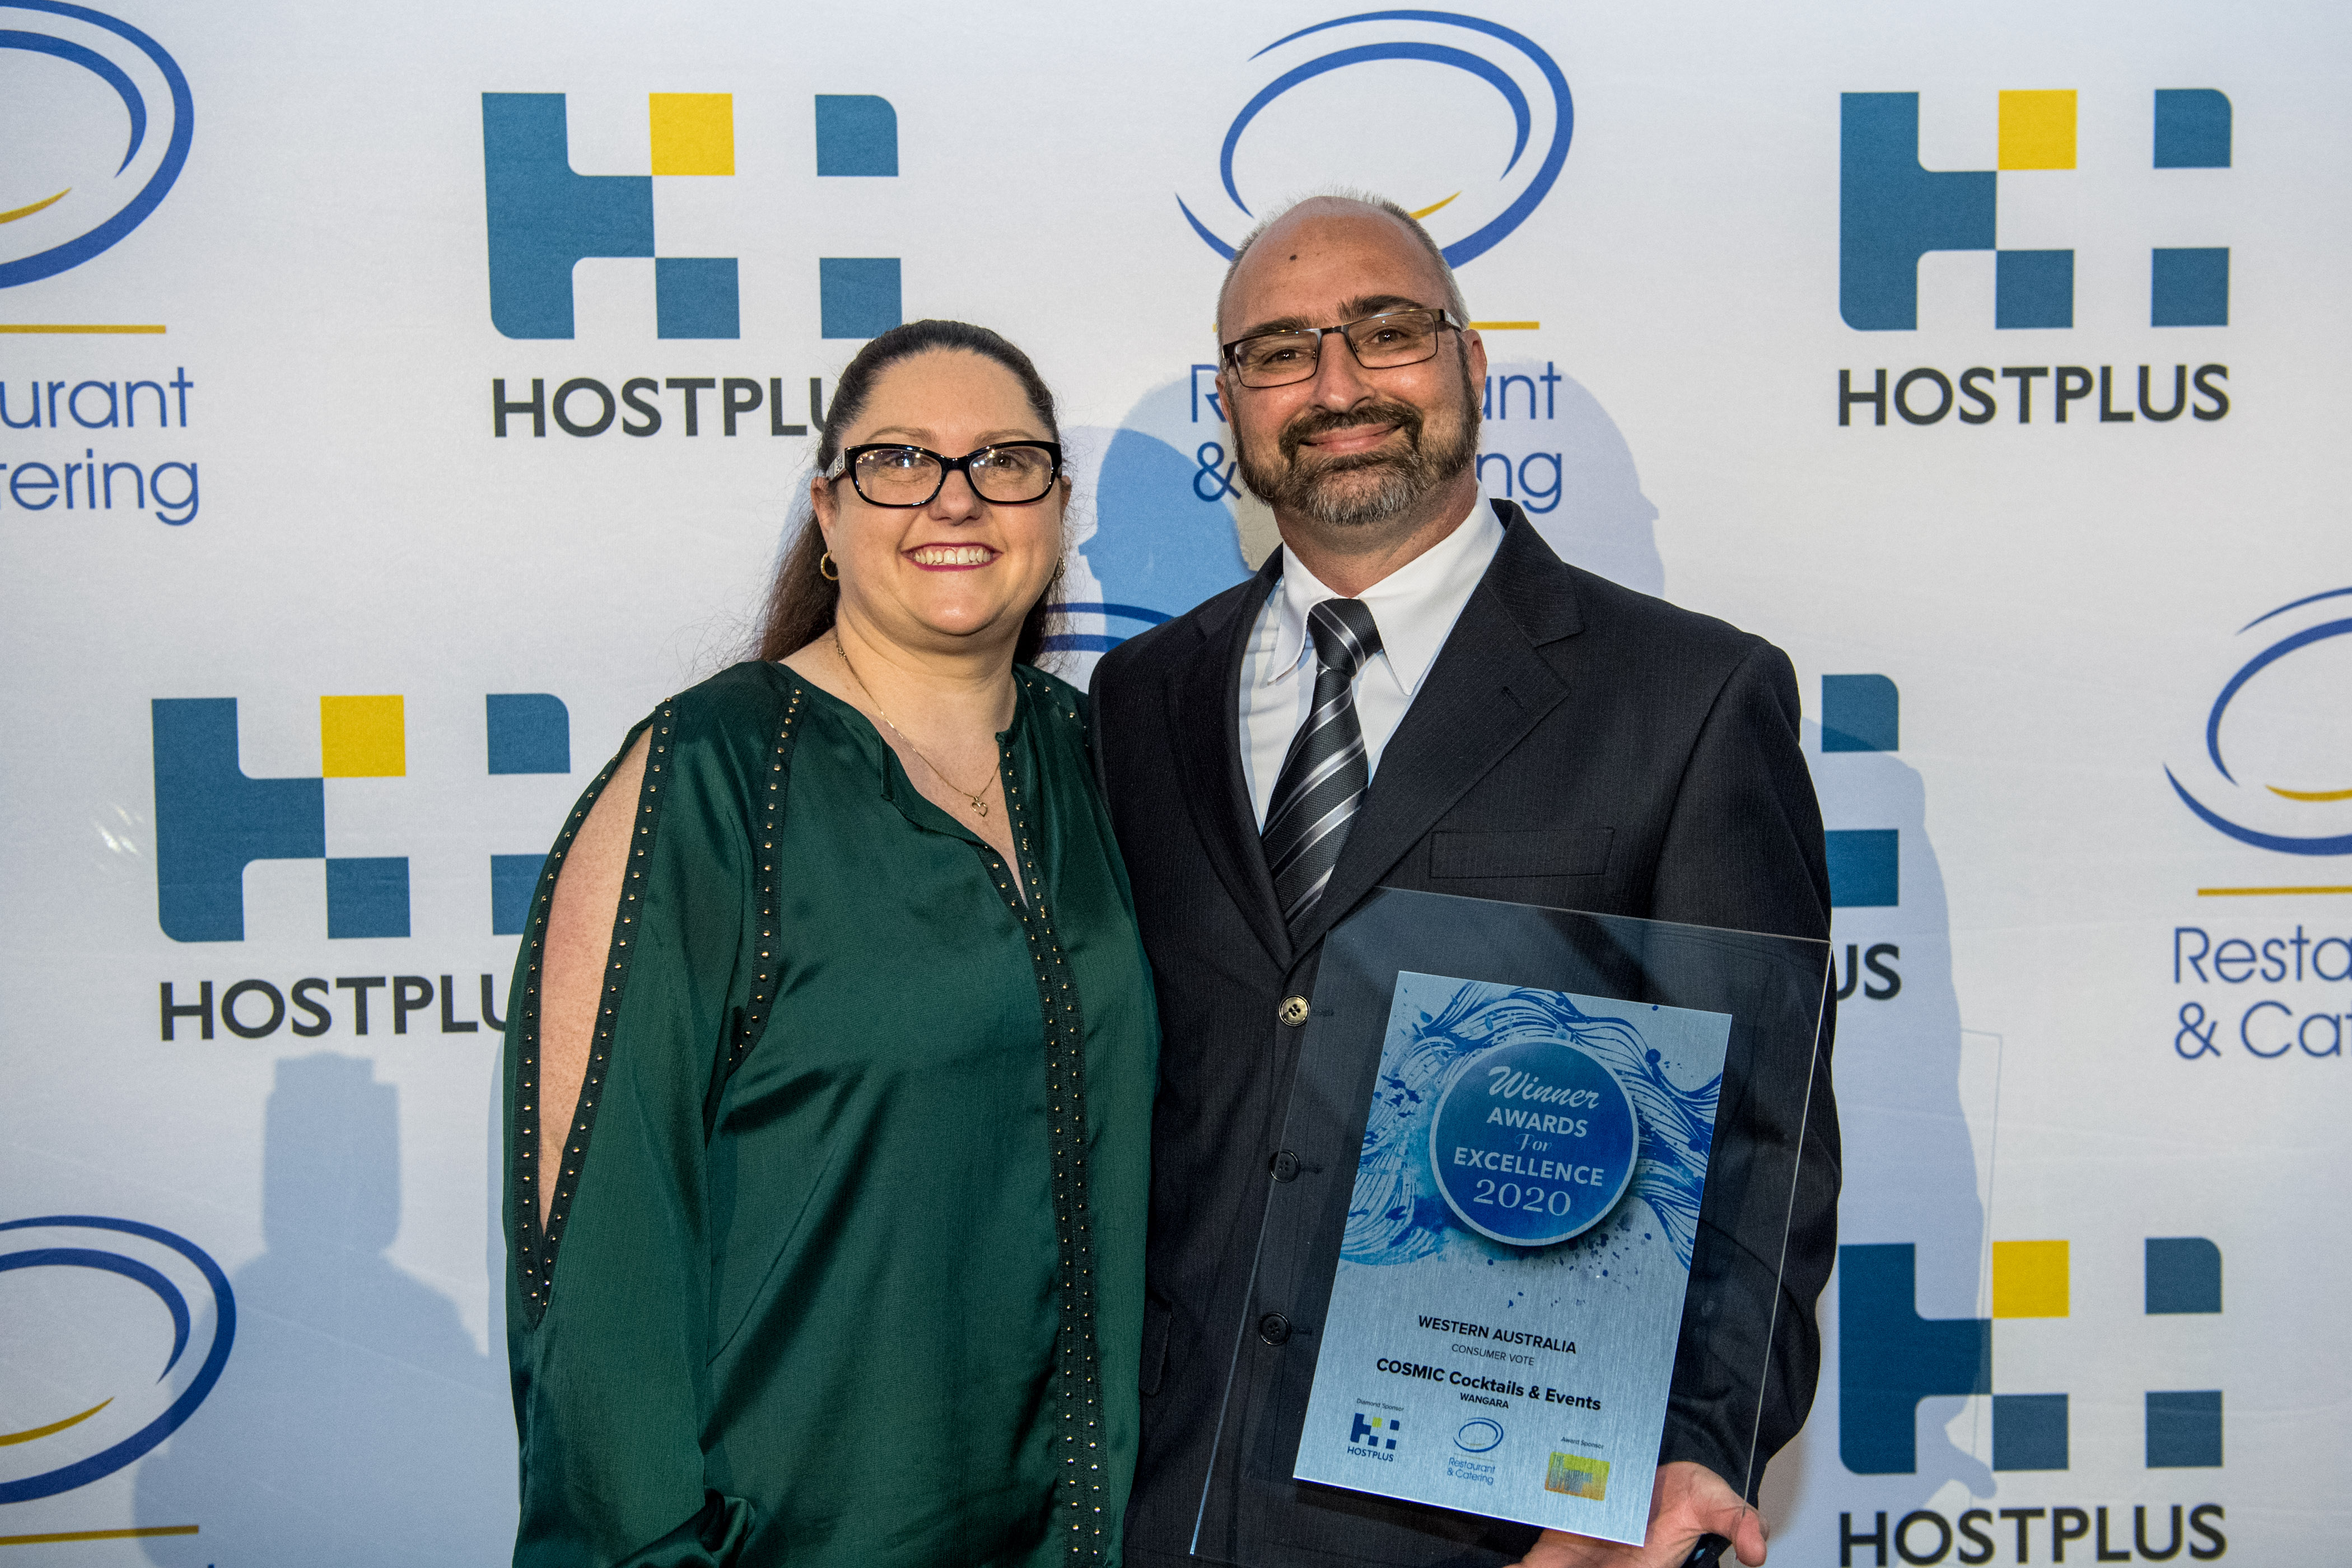 Clint Gurney & Tanya Gurney From COSMIC Cocktails & Events Win Consumer Vote Award 2020